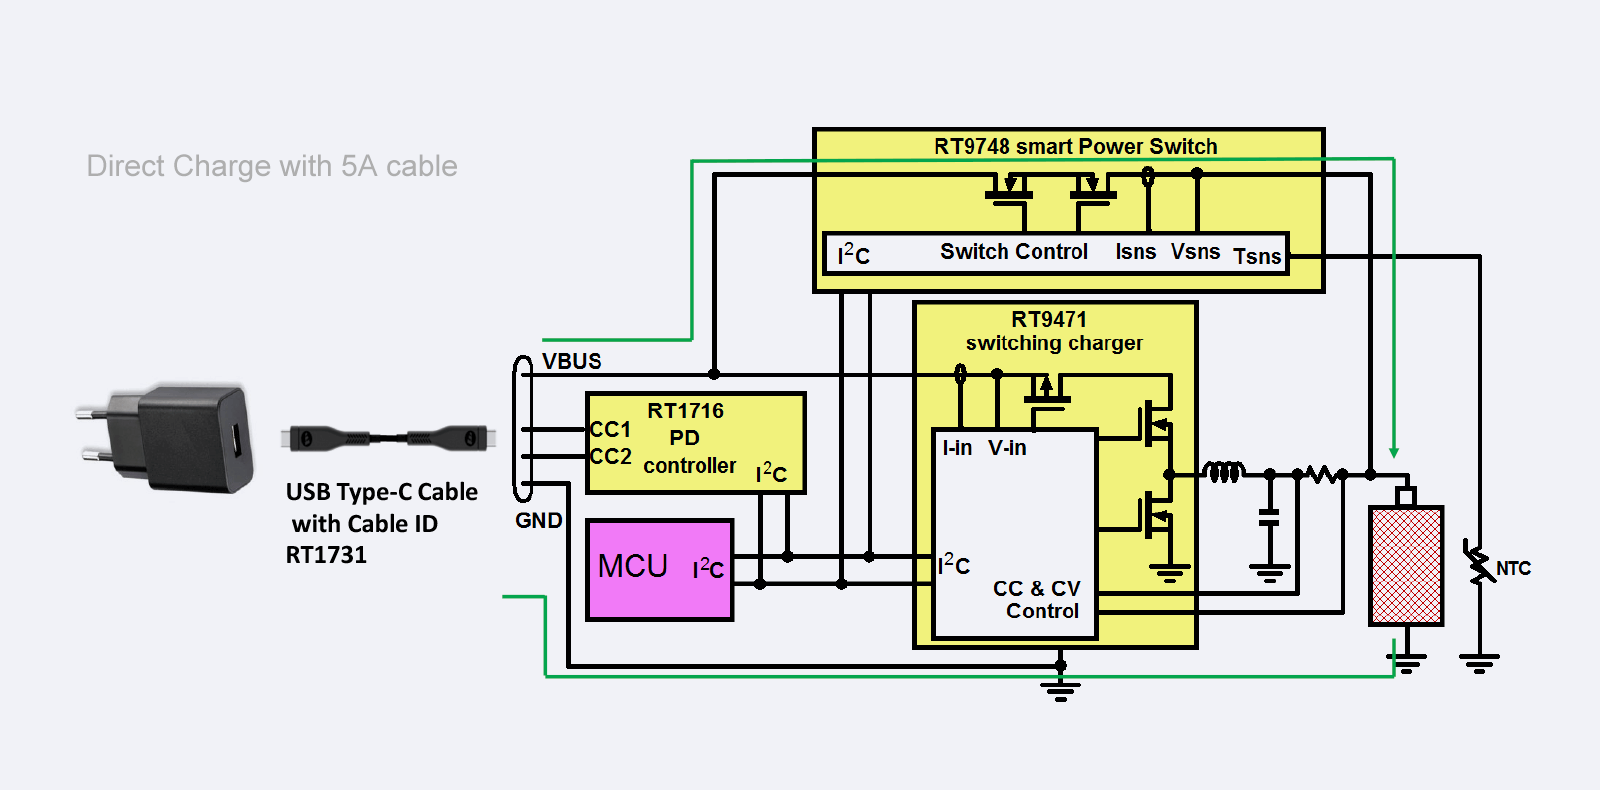 The design example of Direct Charge